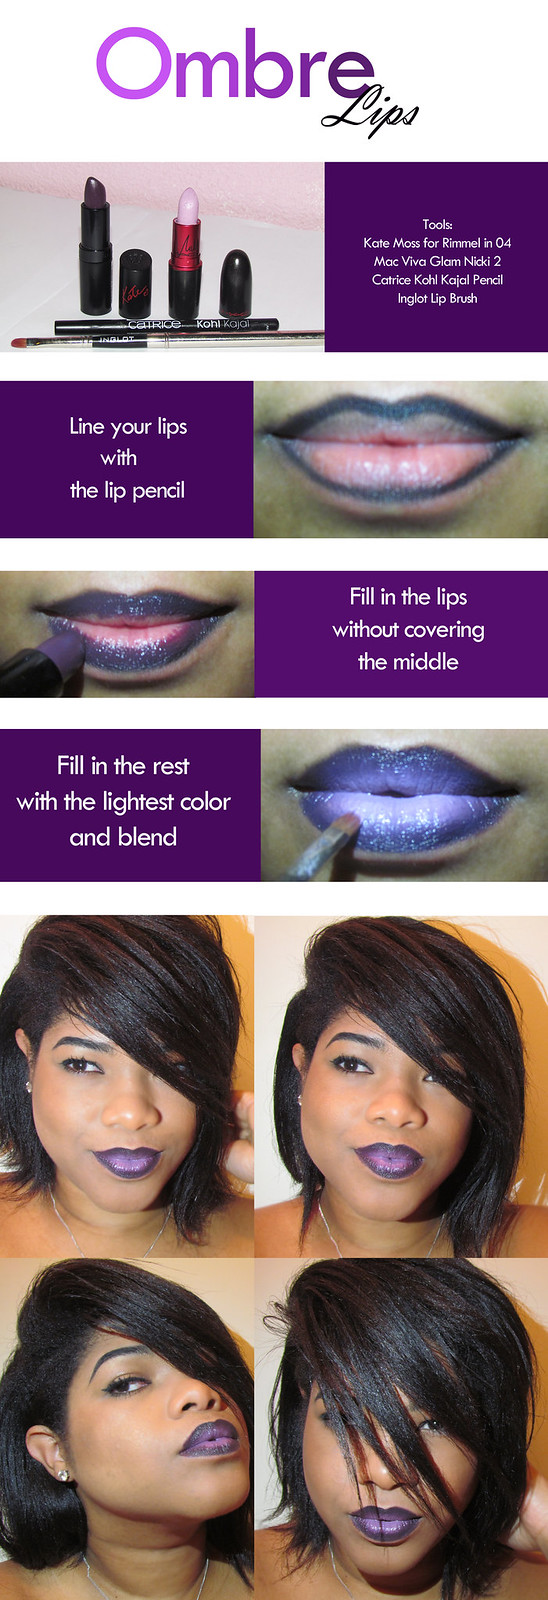 ombre lips, mac, rimmel, catrice, inglot, nicki minaj, viva glam 2, kate moss, make up, beauty, tutorial, get the look,black make up